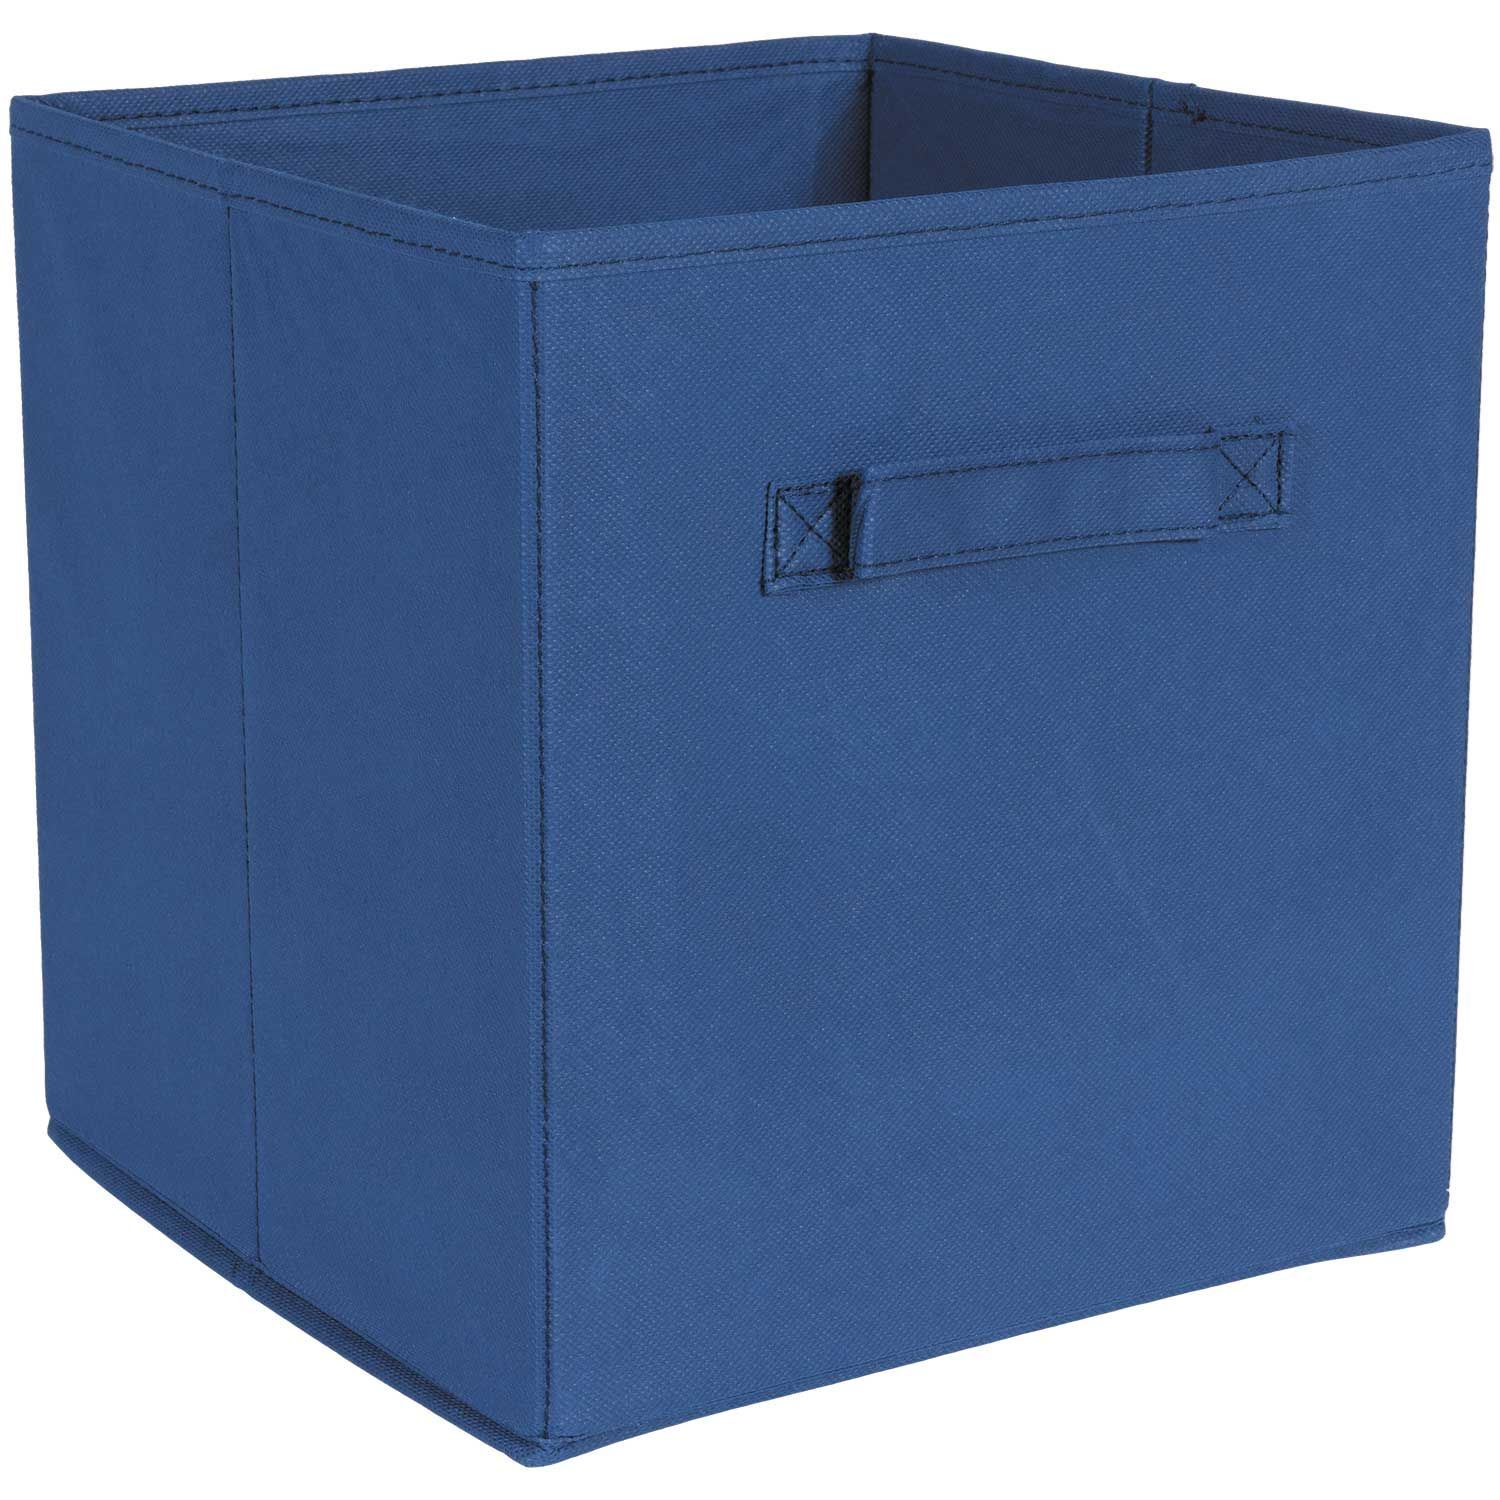 Picture of SystemBuild Blue Fabric Bin